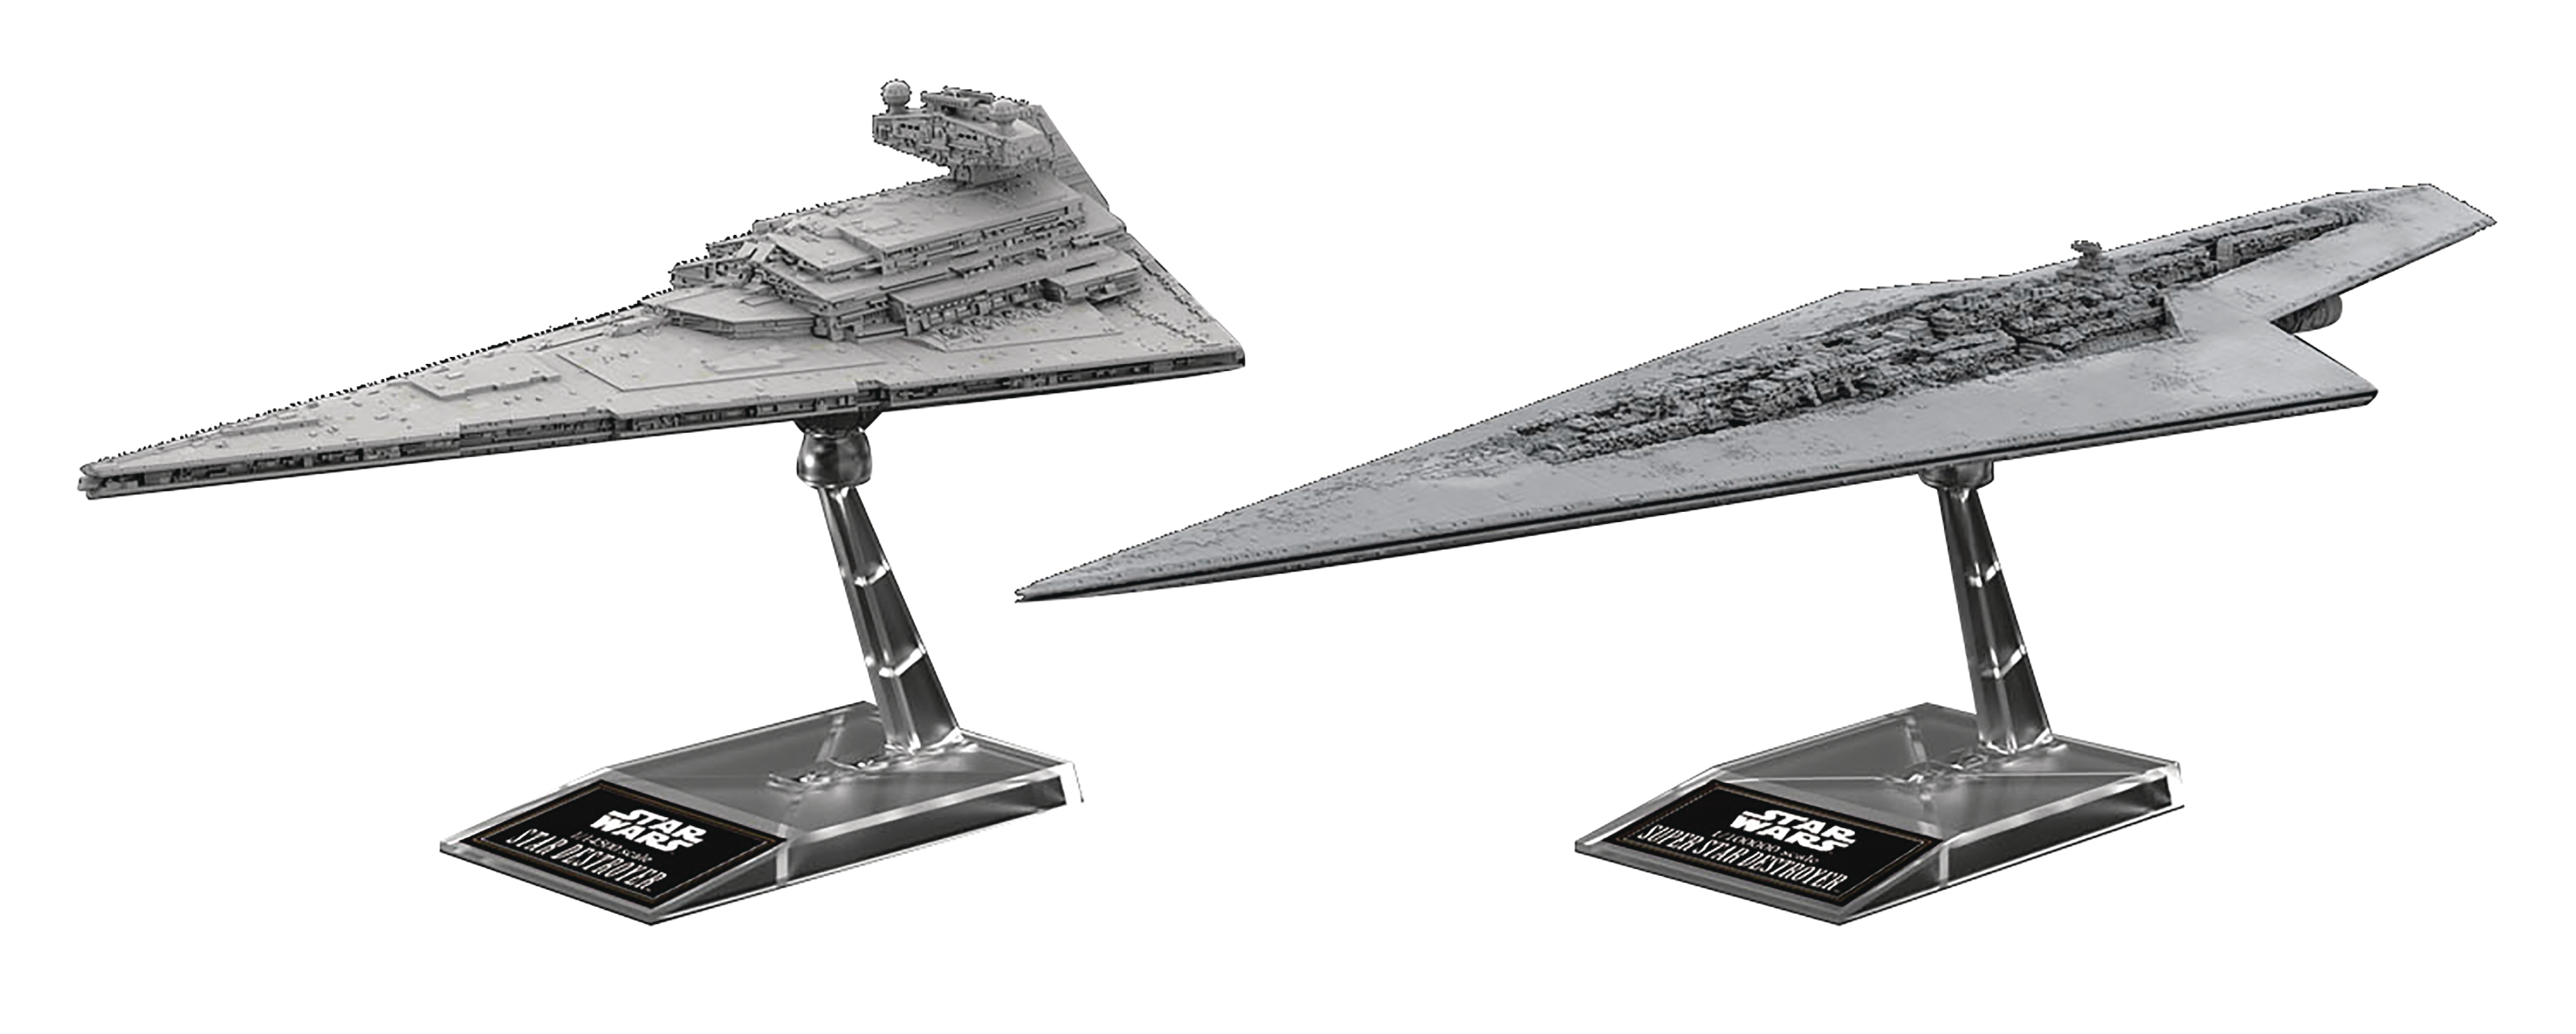 SW SUPER STAR DESTROYER & STAR DESTROYER VEHICLE MODEL 2PK (